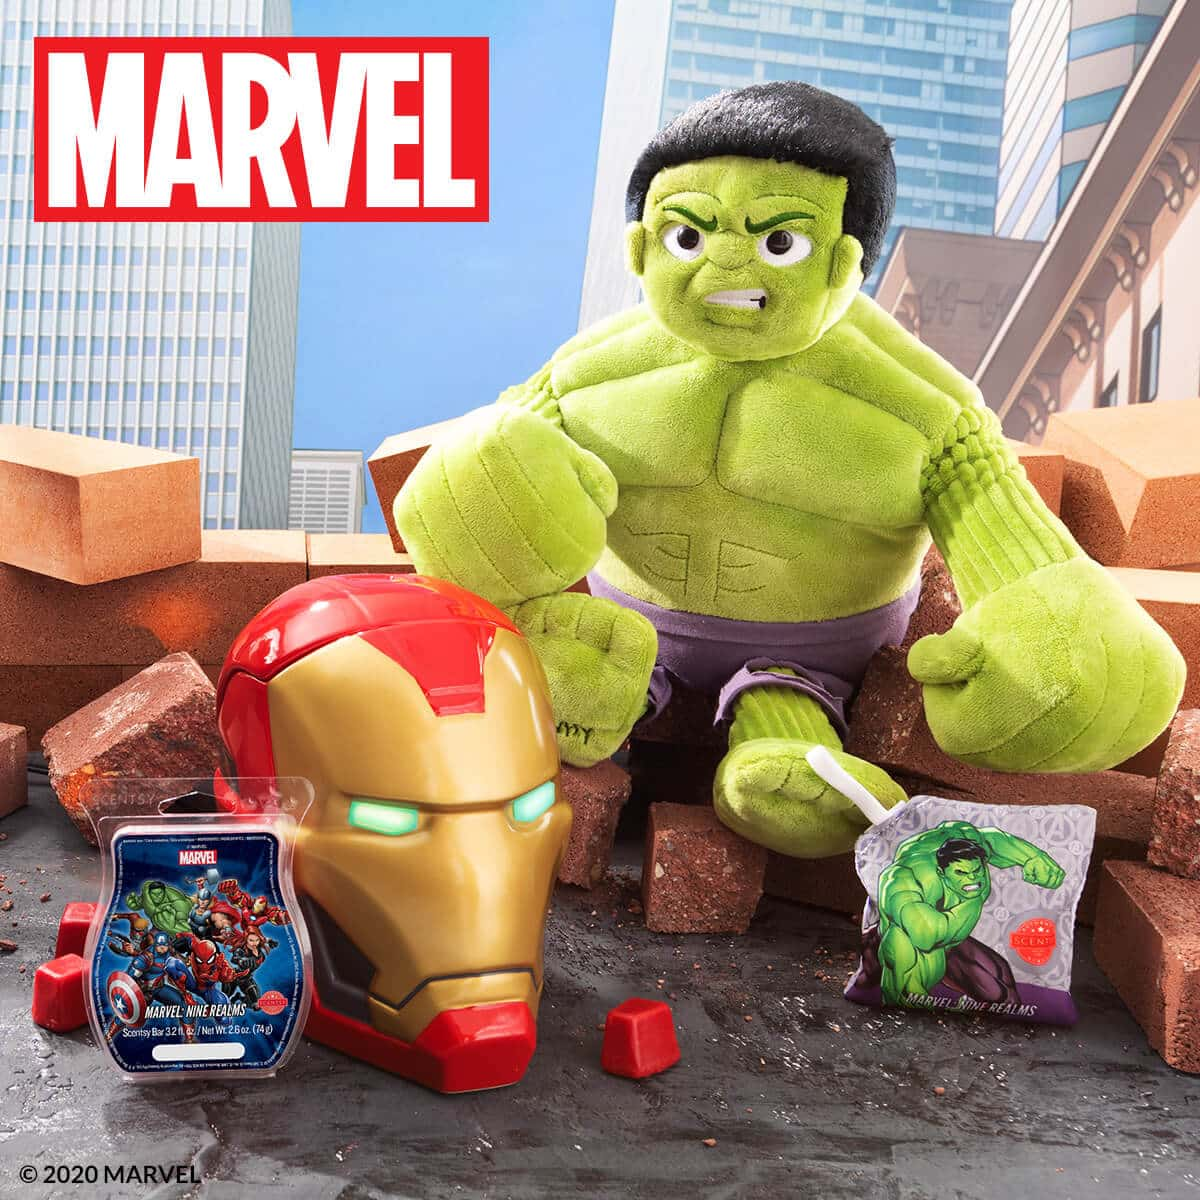 MARVEL: SPIDER-MAN & IRON MAN SCENTSY WARMERS, HULK SCENTSY BUDDY | SHOP NOW